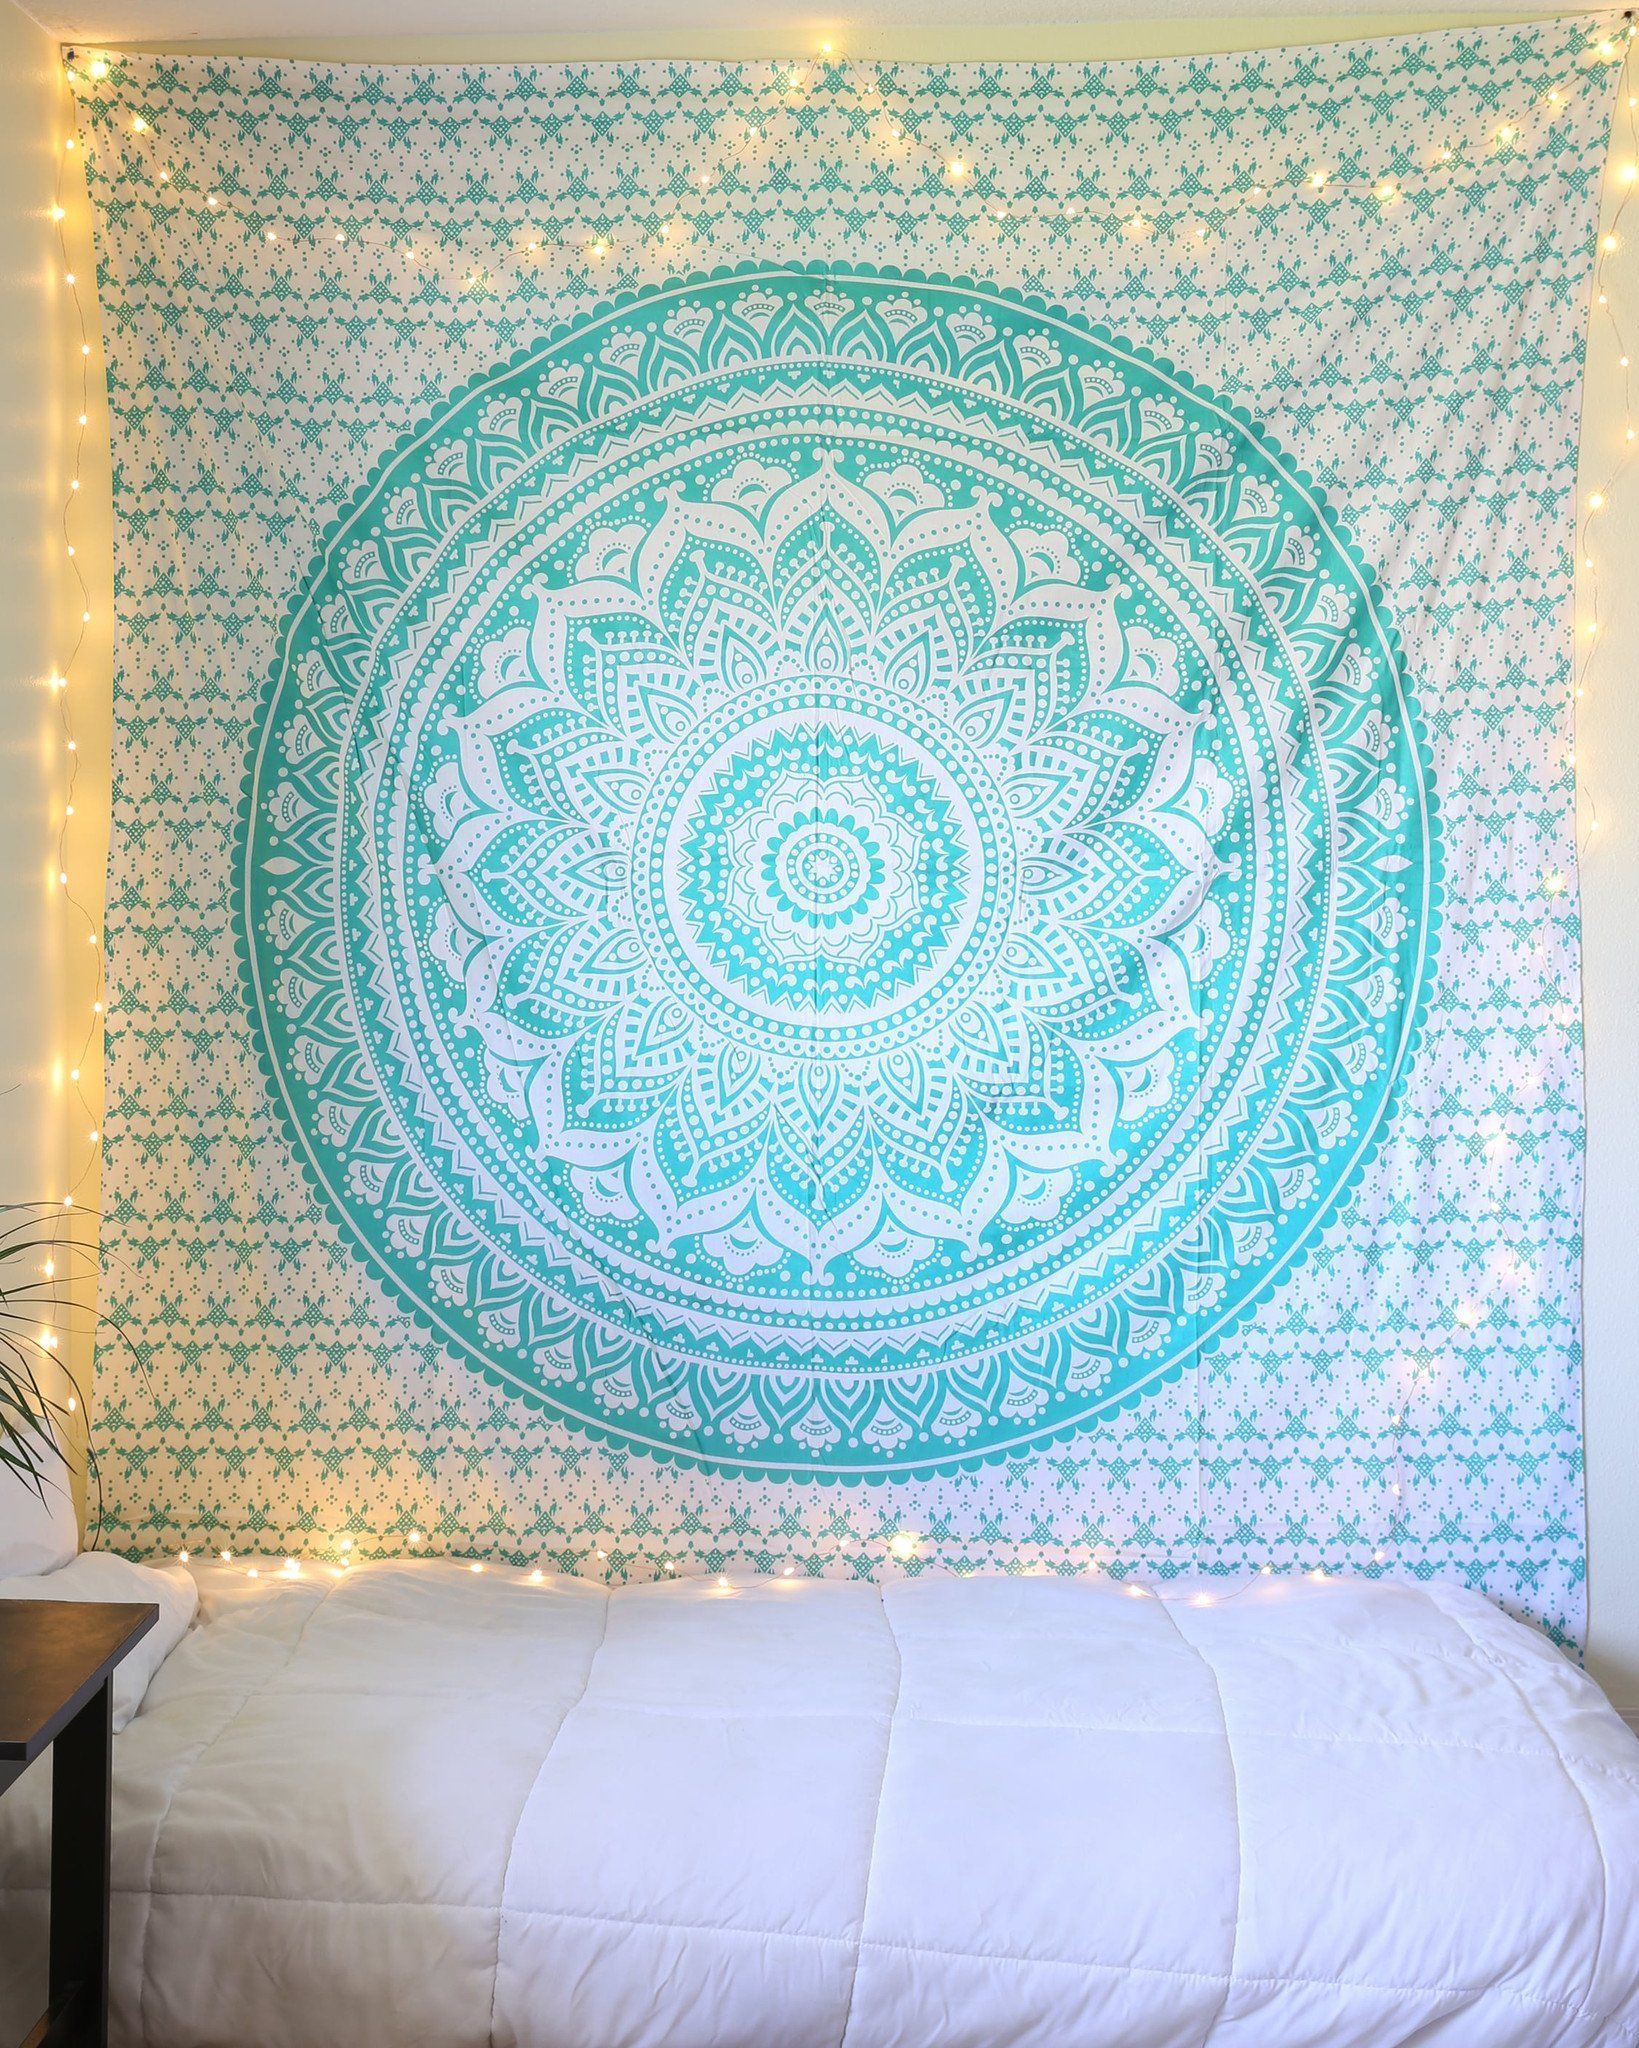 Aquamarine Mermaid Sparkly Tapestry